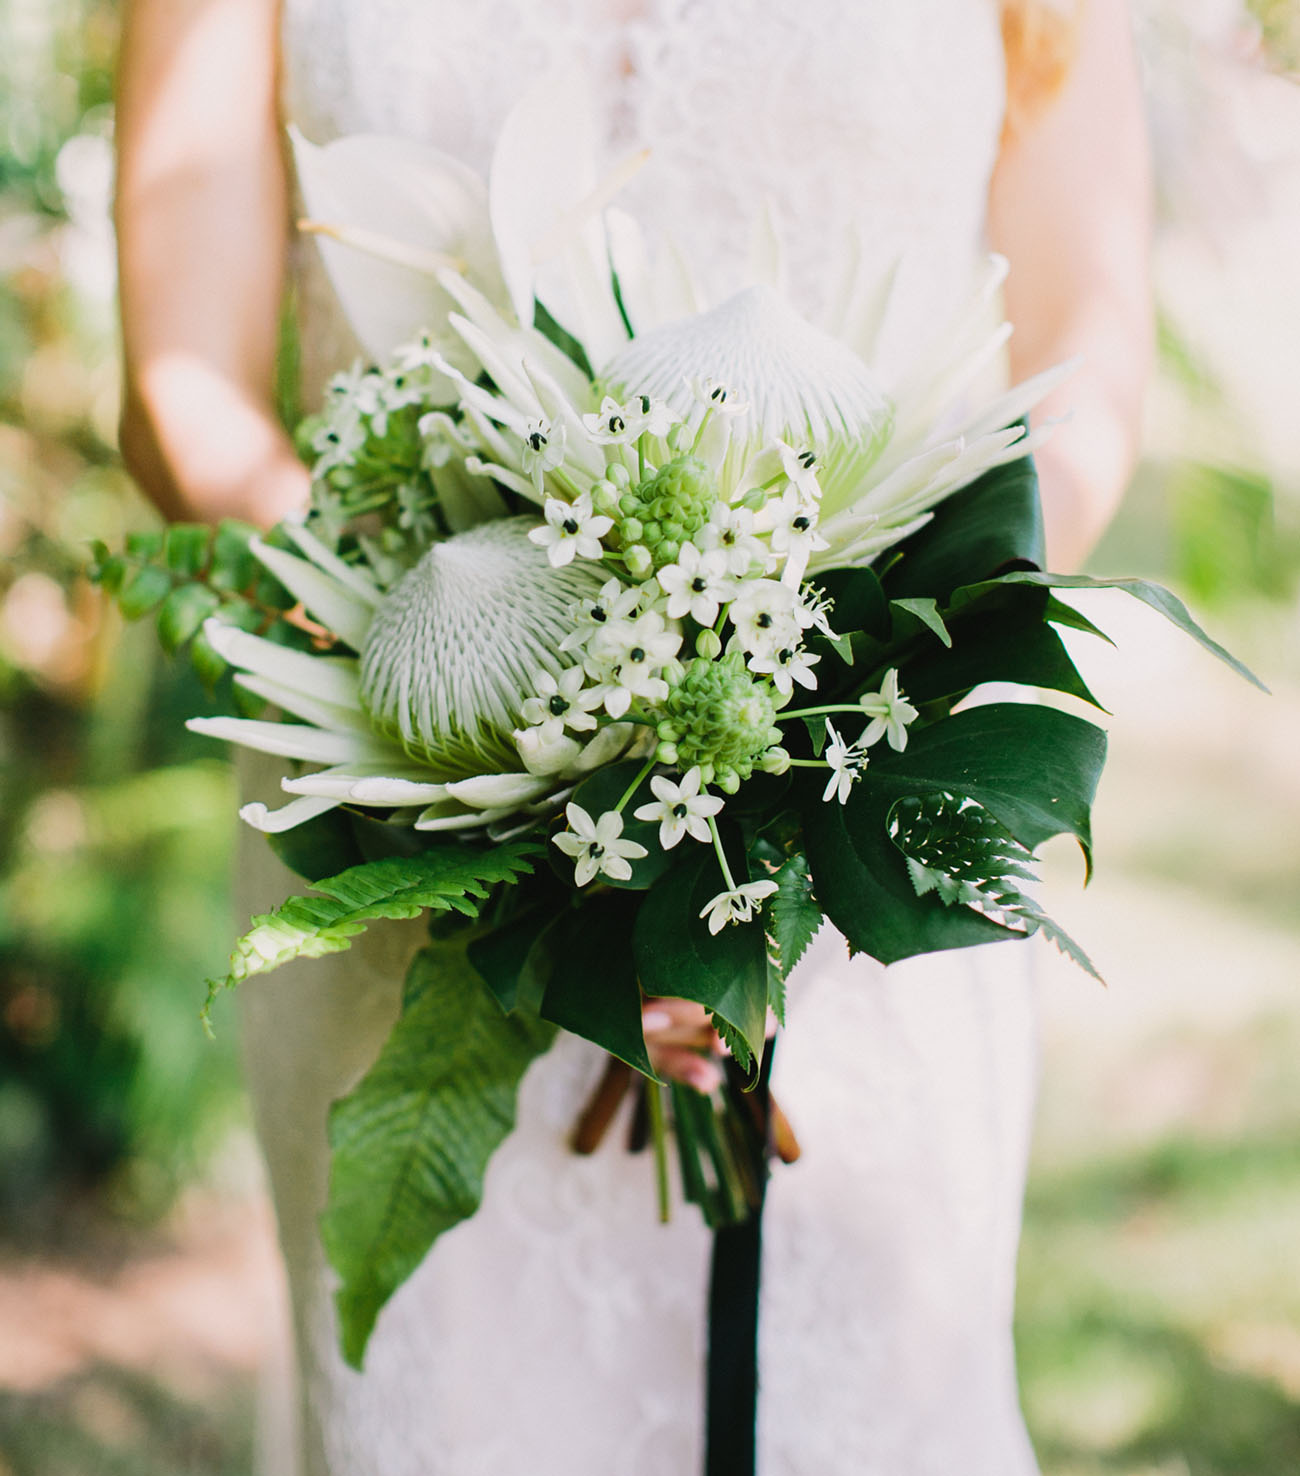 Protea Wedding Flowers: Bouquet With King Protea And Ornithogalum